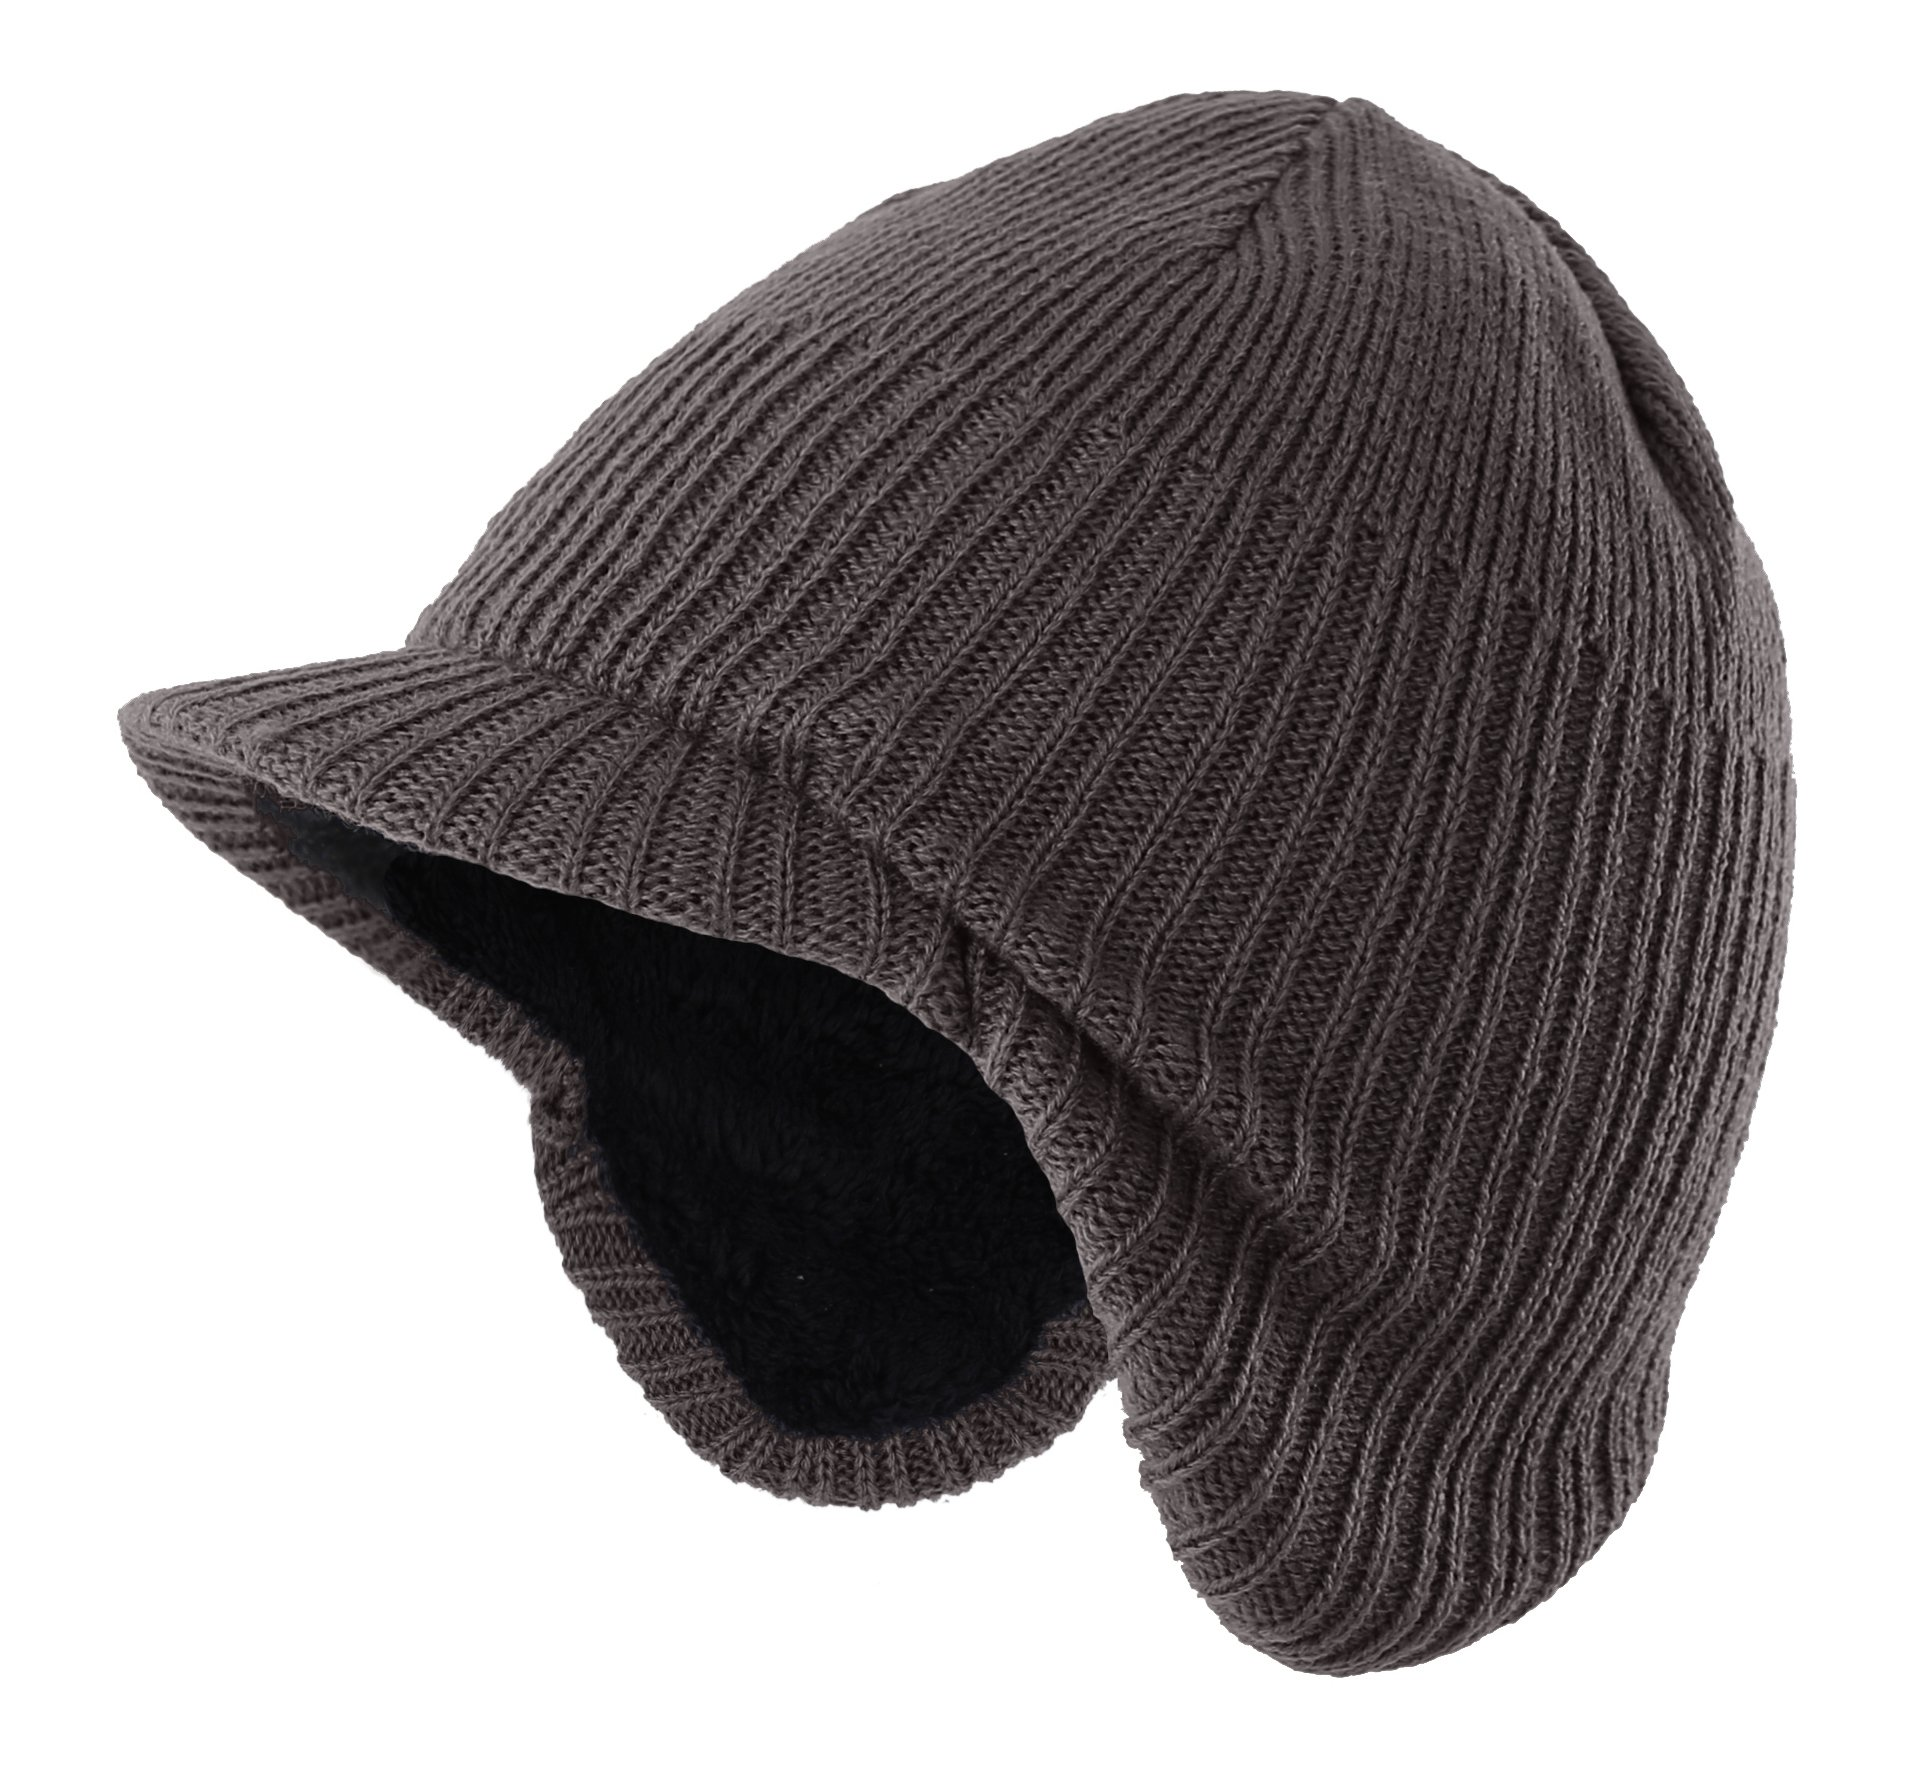 Home Prefer Toddler Boys Winter Hat Warm Kids Knitted Hat with Visor Earflaps Hat Gray Medium